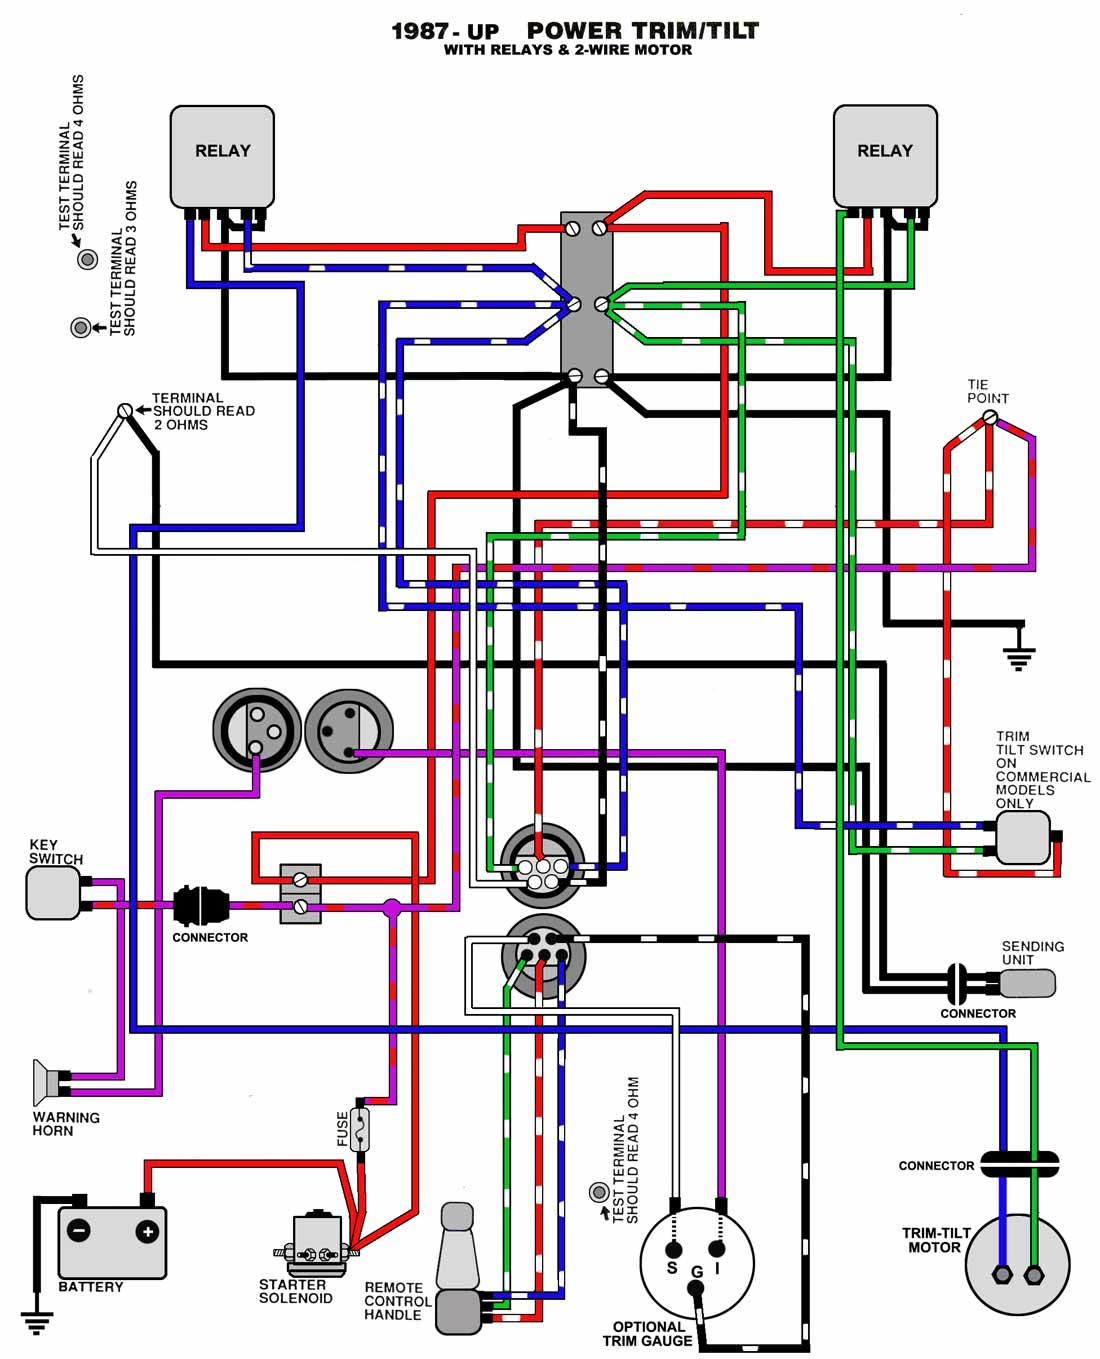 TnT_87_UP mastertech marine evinrude johnson outboard wiring diagrams 1992 johnson 40 hp outboard wiring diagram at soozxer.org